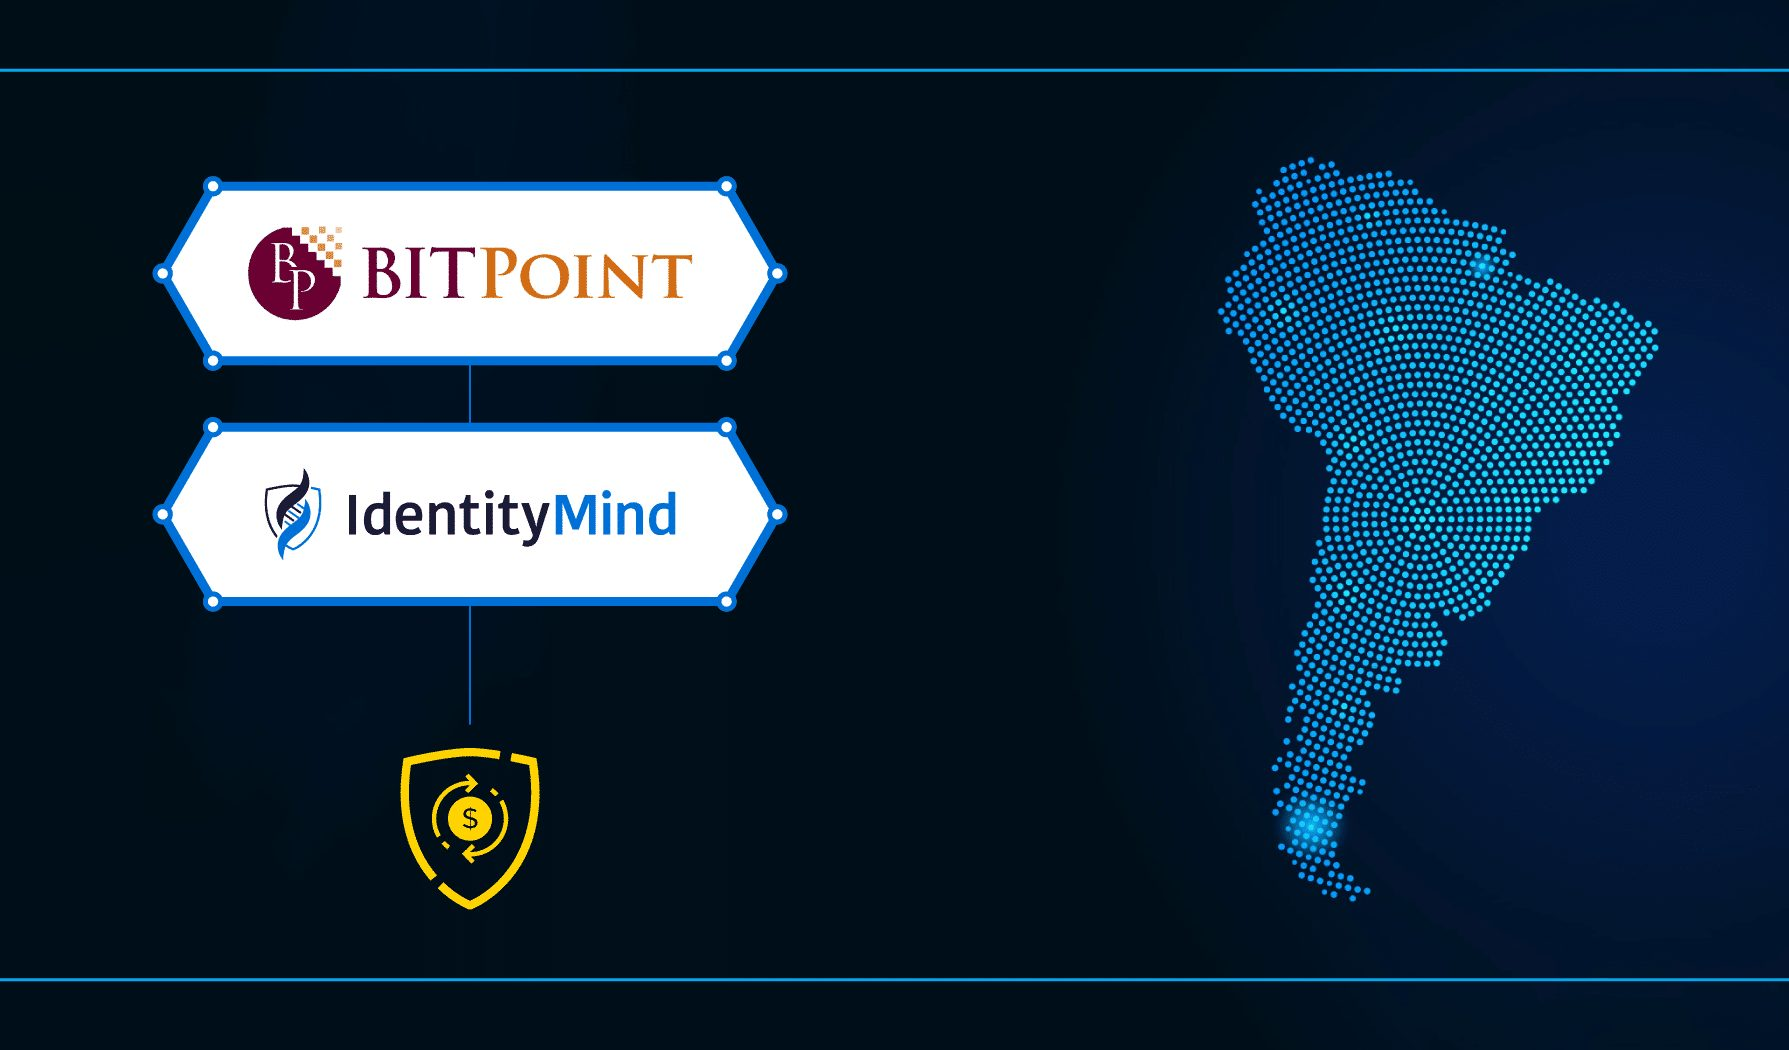 BITPoint Continues Latin America Expansion with IdentityMind Partnership for AML Compliance